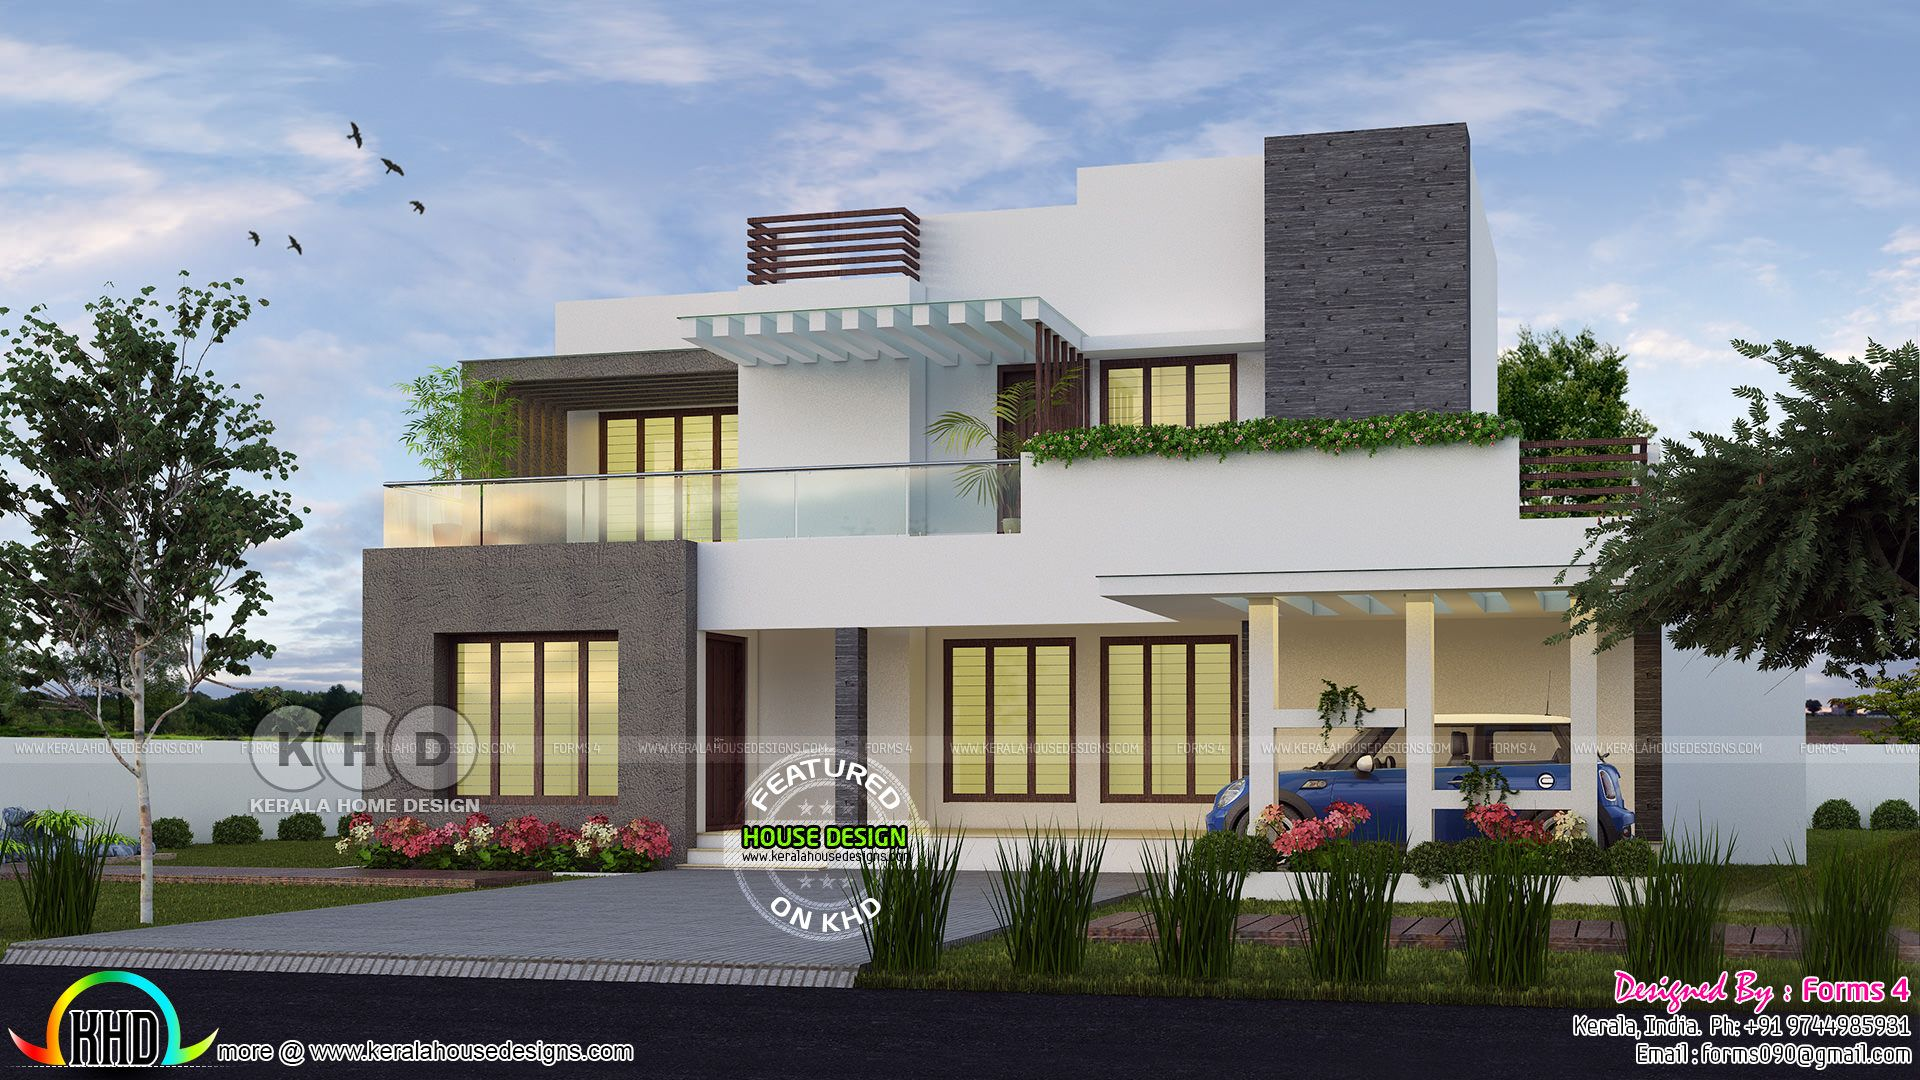 4 Bedroom 35 Lakhs Cost Estimated Modern House Kerala House Design Modern House Kerala Houses